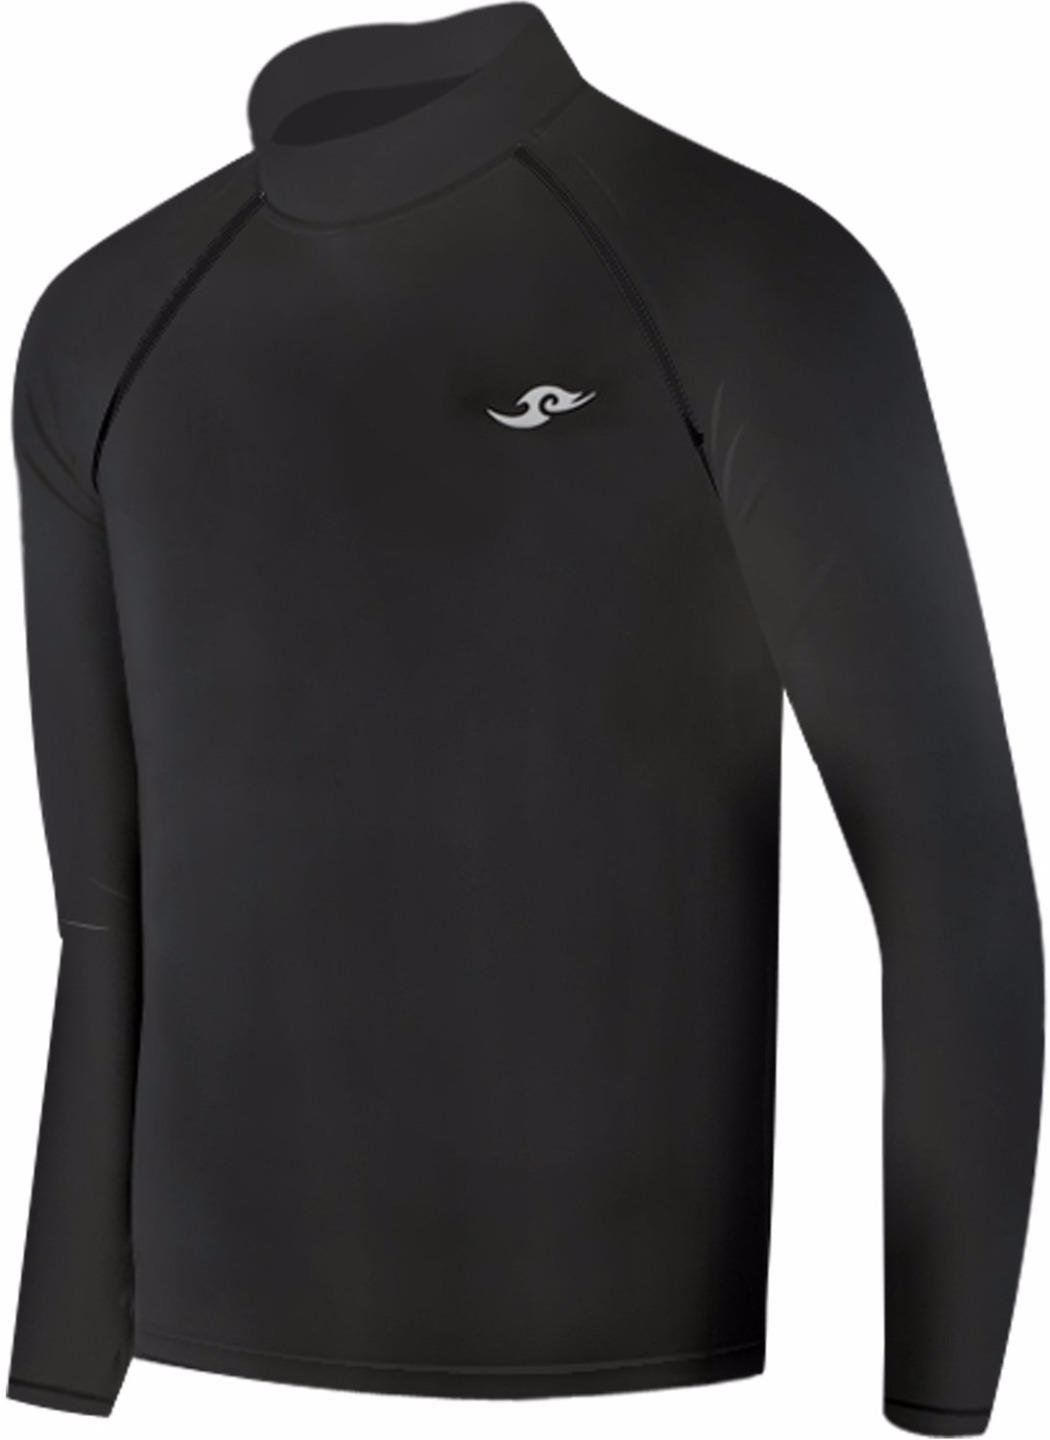 New Boys & Girls Youth 114 Black Winter Compression Skin Tight Shirt (S (3)) JustOneStyle